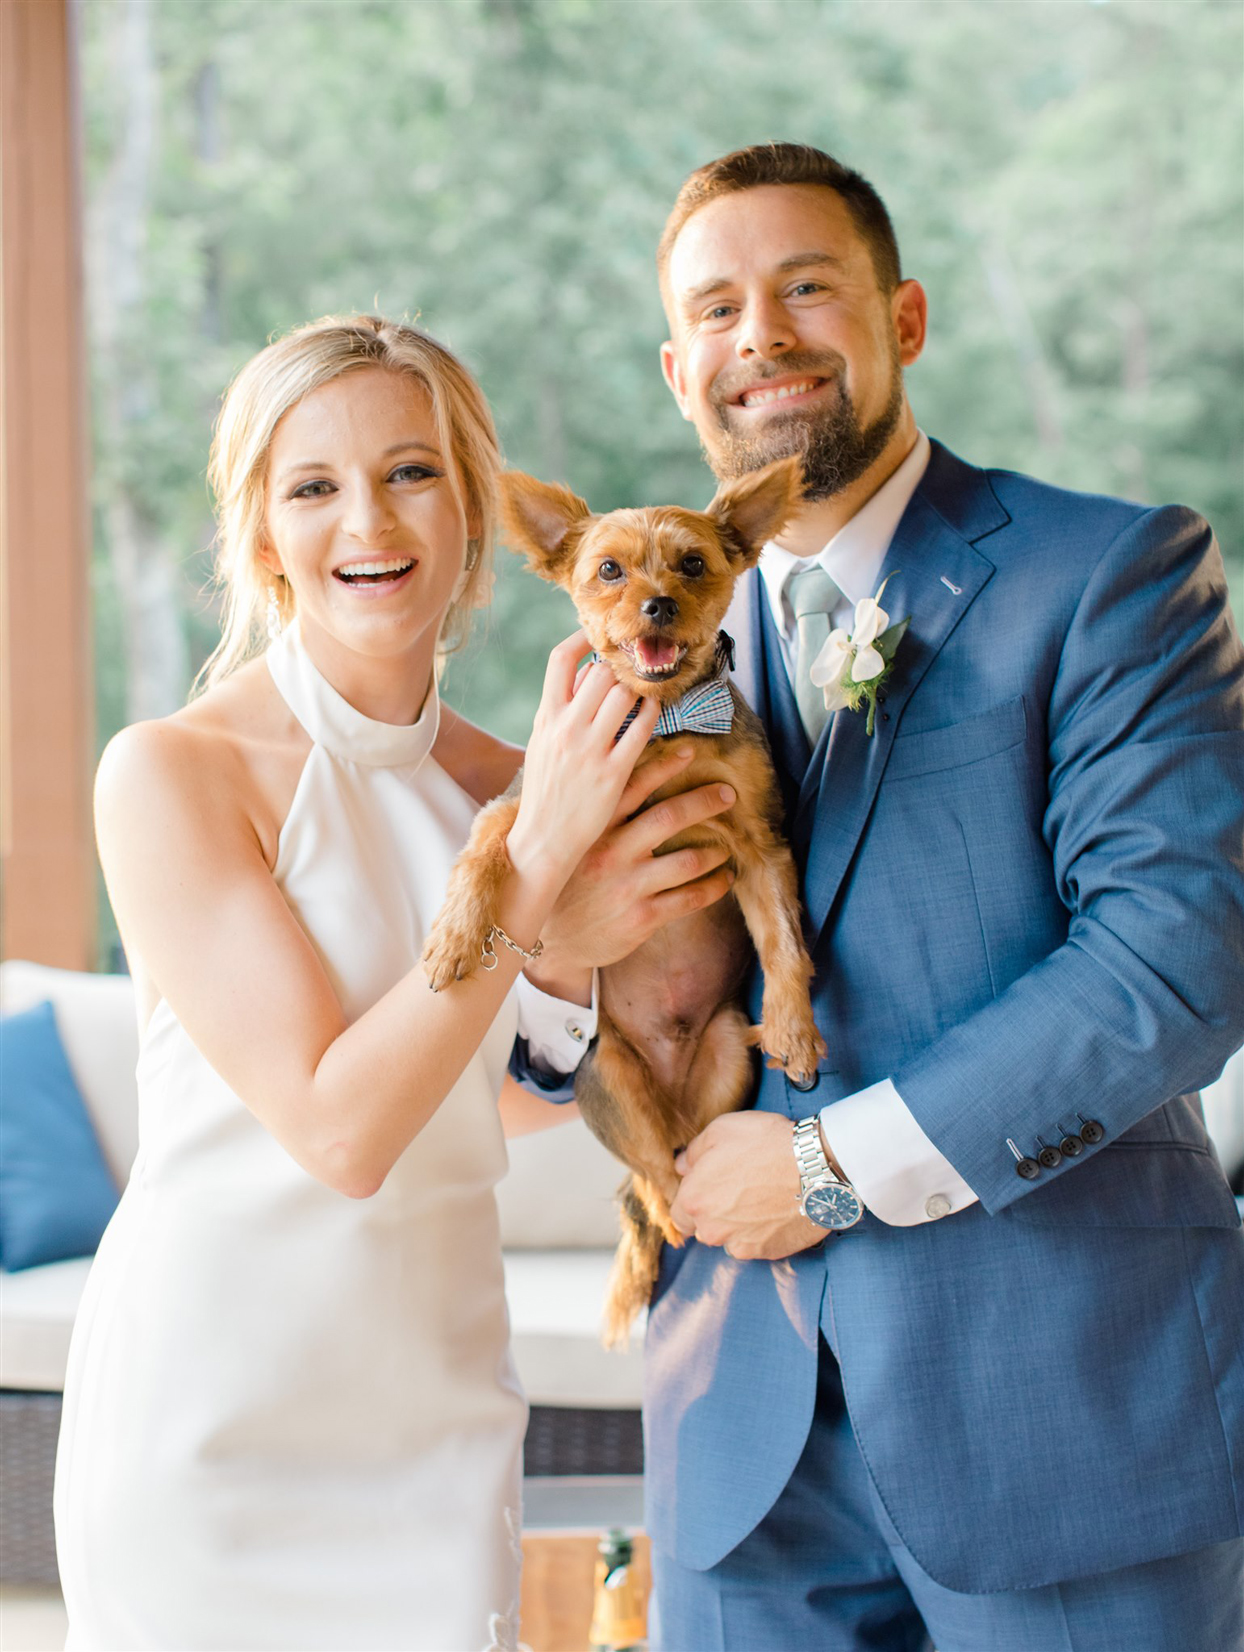 bride and groom holding puppy wearing bowtie